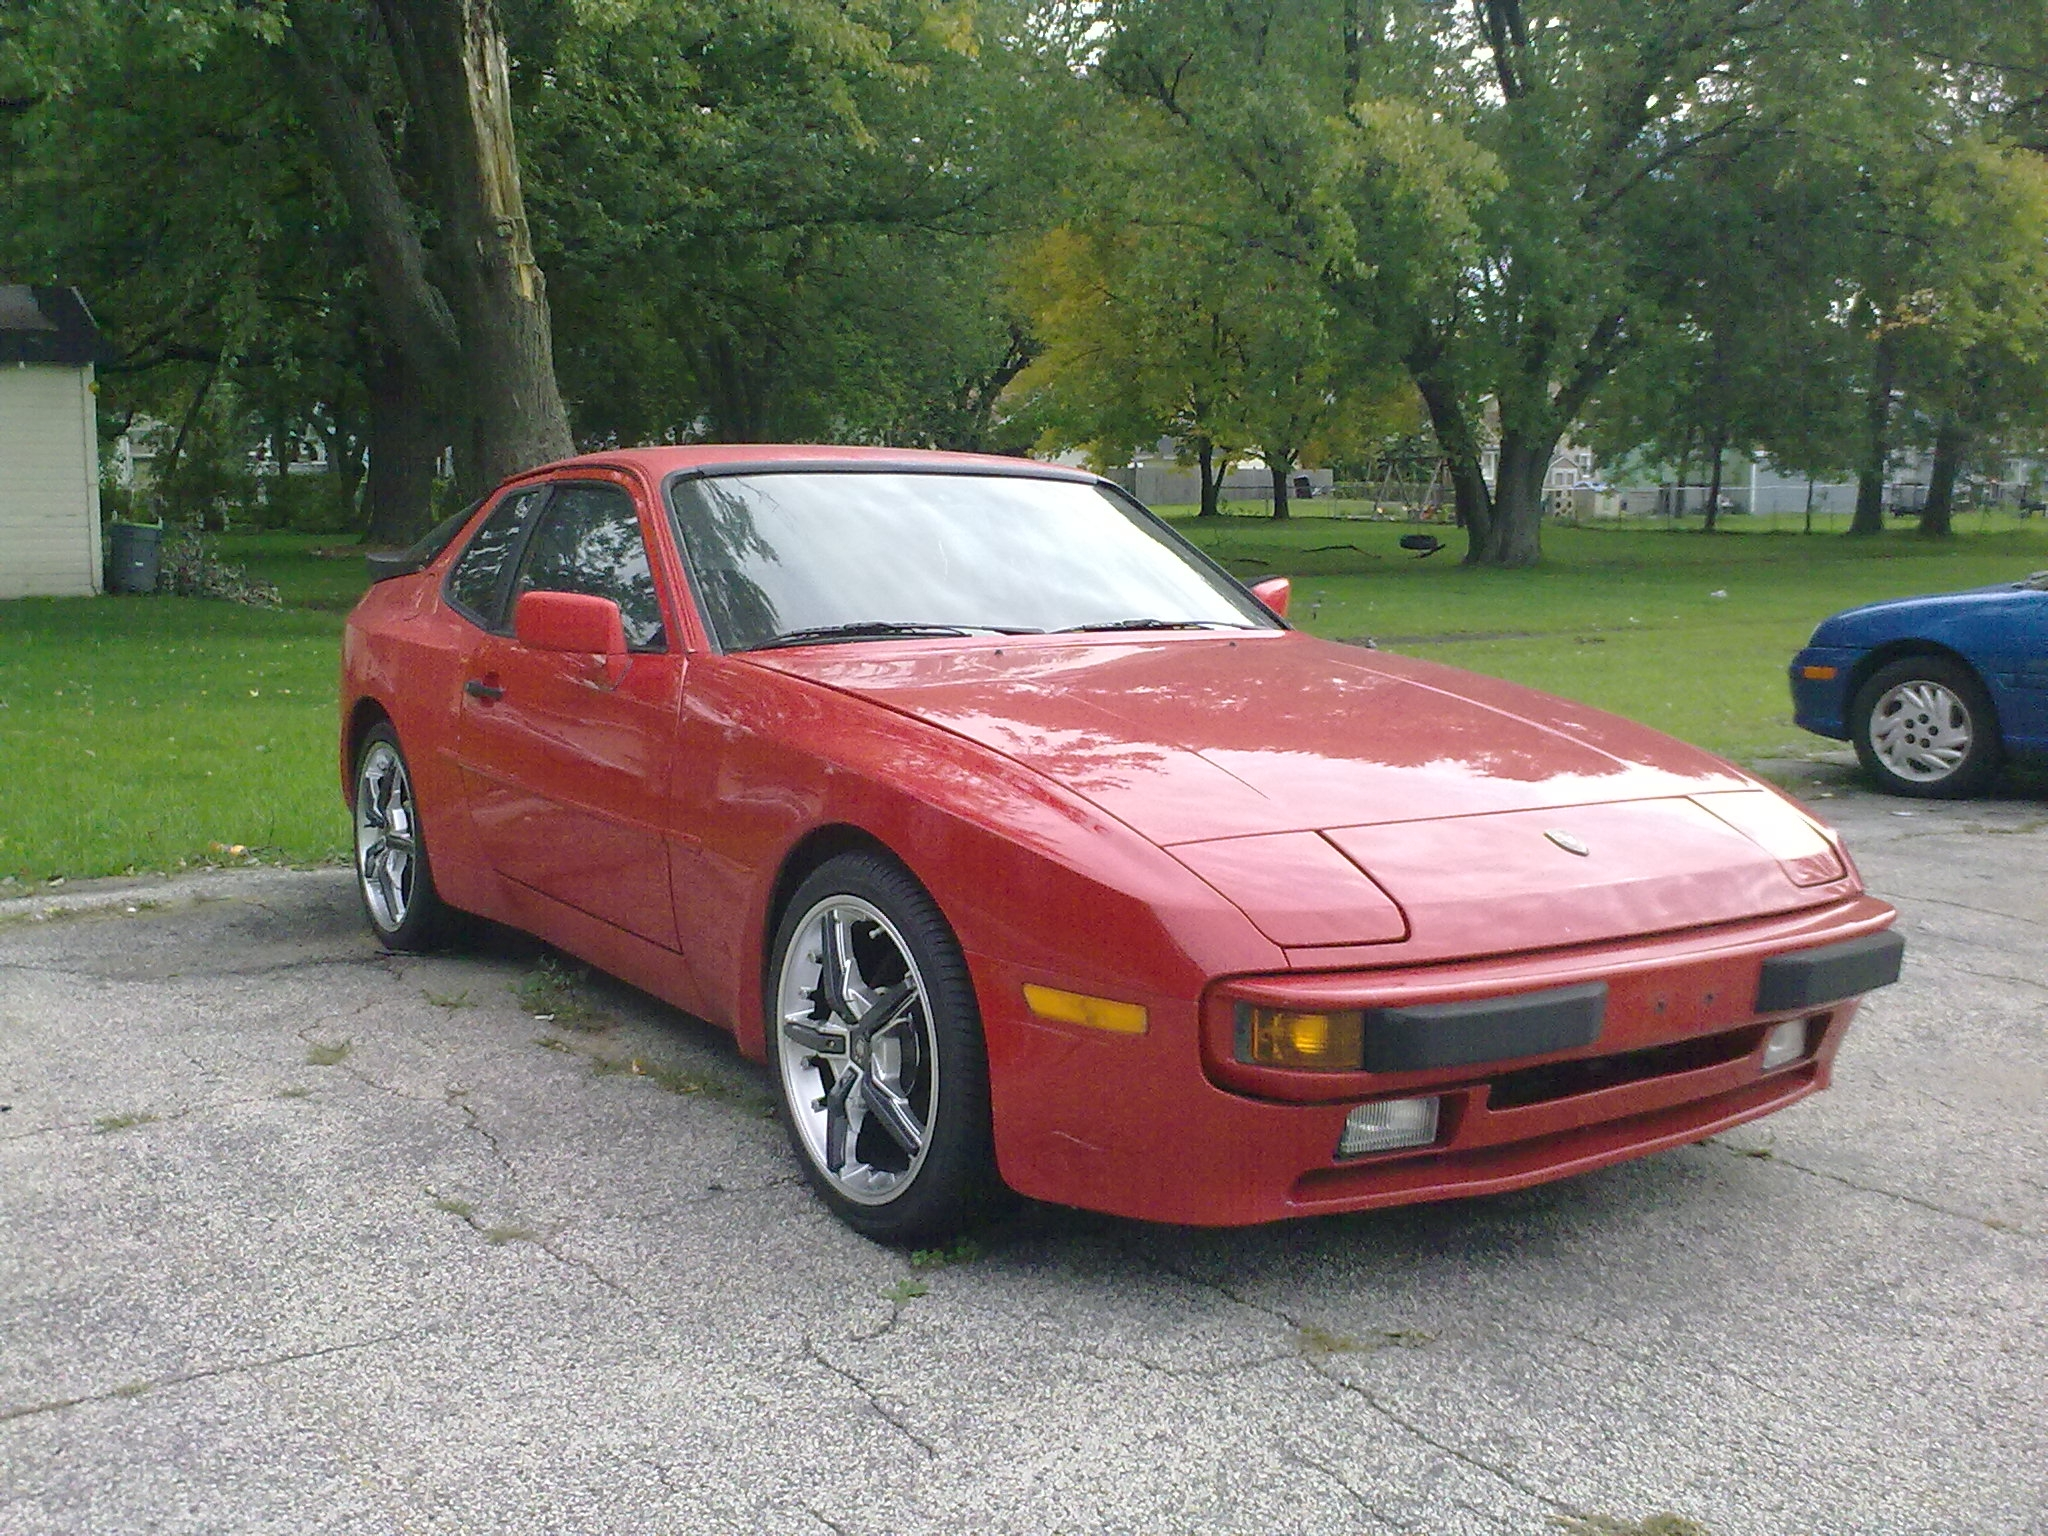 ripper426 1984 Porsche 944 Specs, Photos, Modification Info at CarDomain